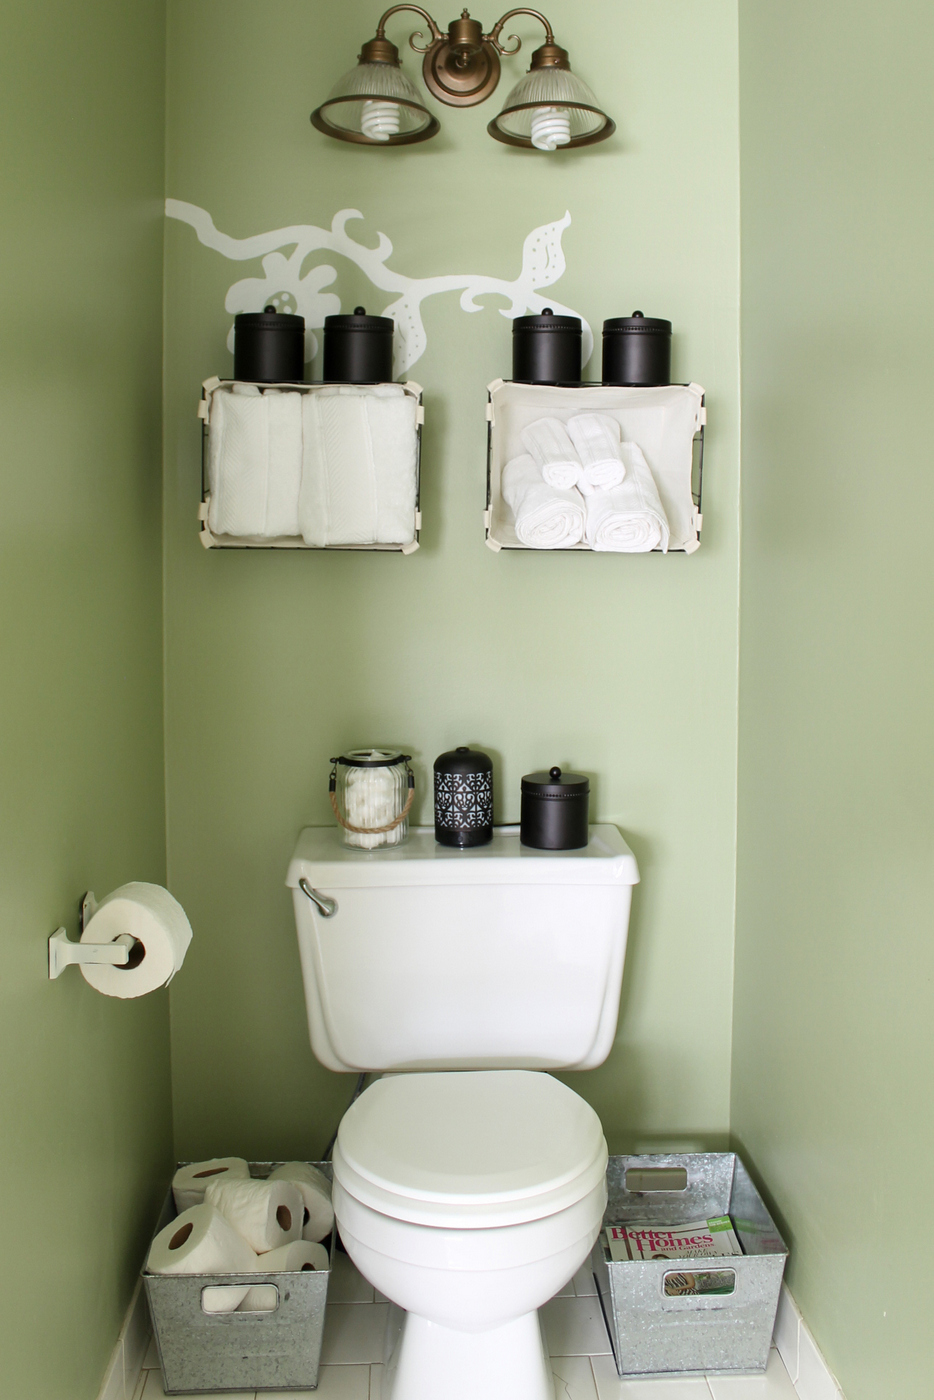 Small Bathroom Organization Ideas The Country Chic Cottage: how to organize bathroom